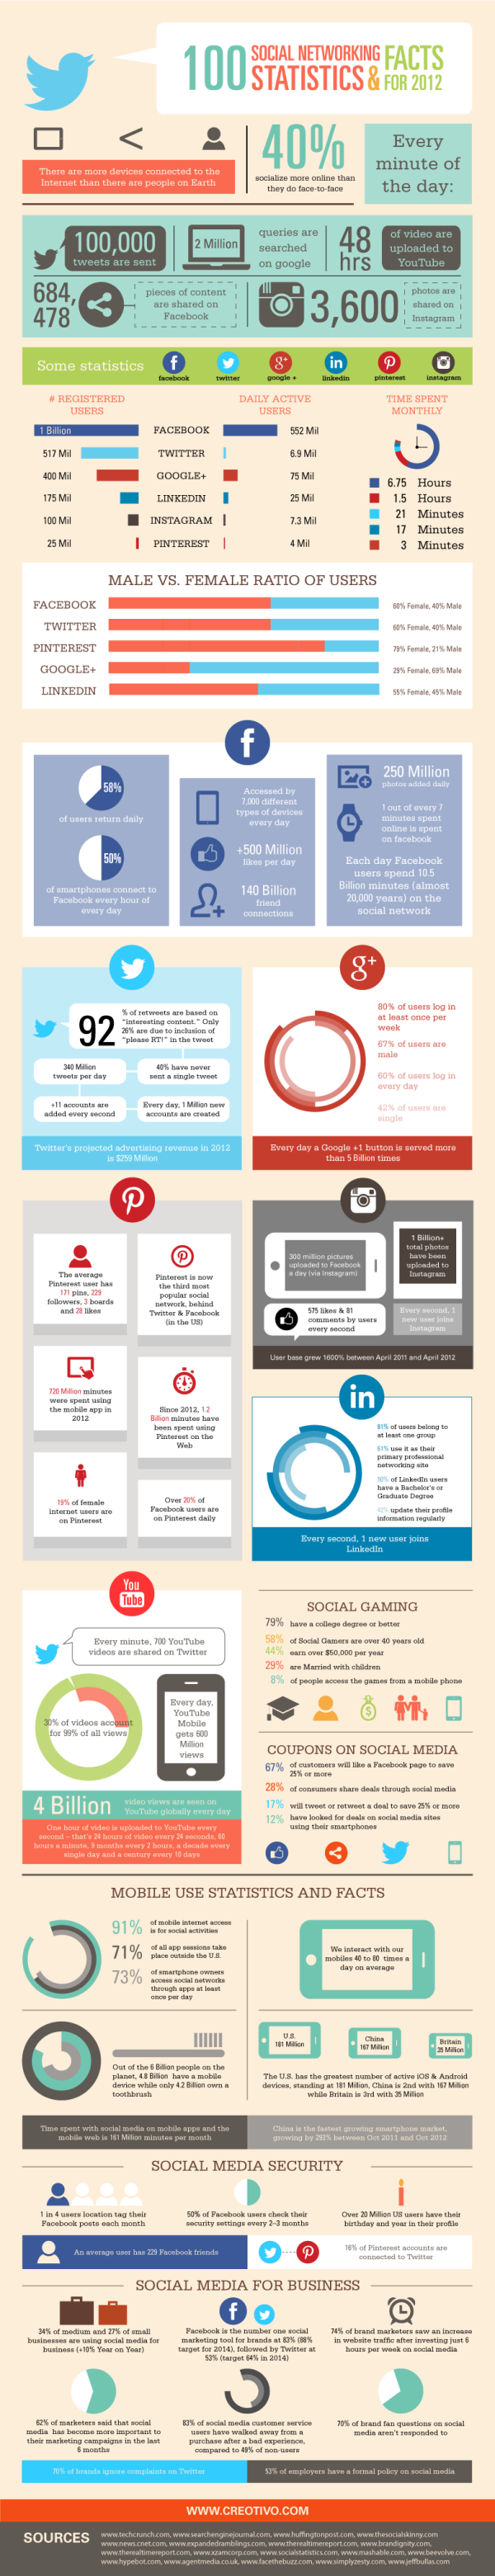 Social Networking Statistics for 2012 resized 600